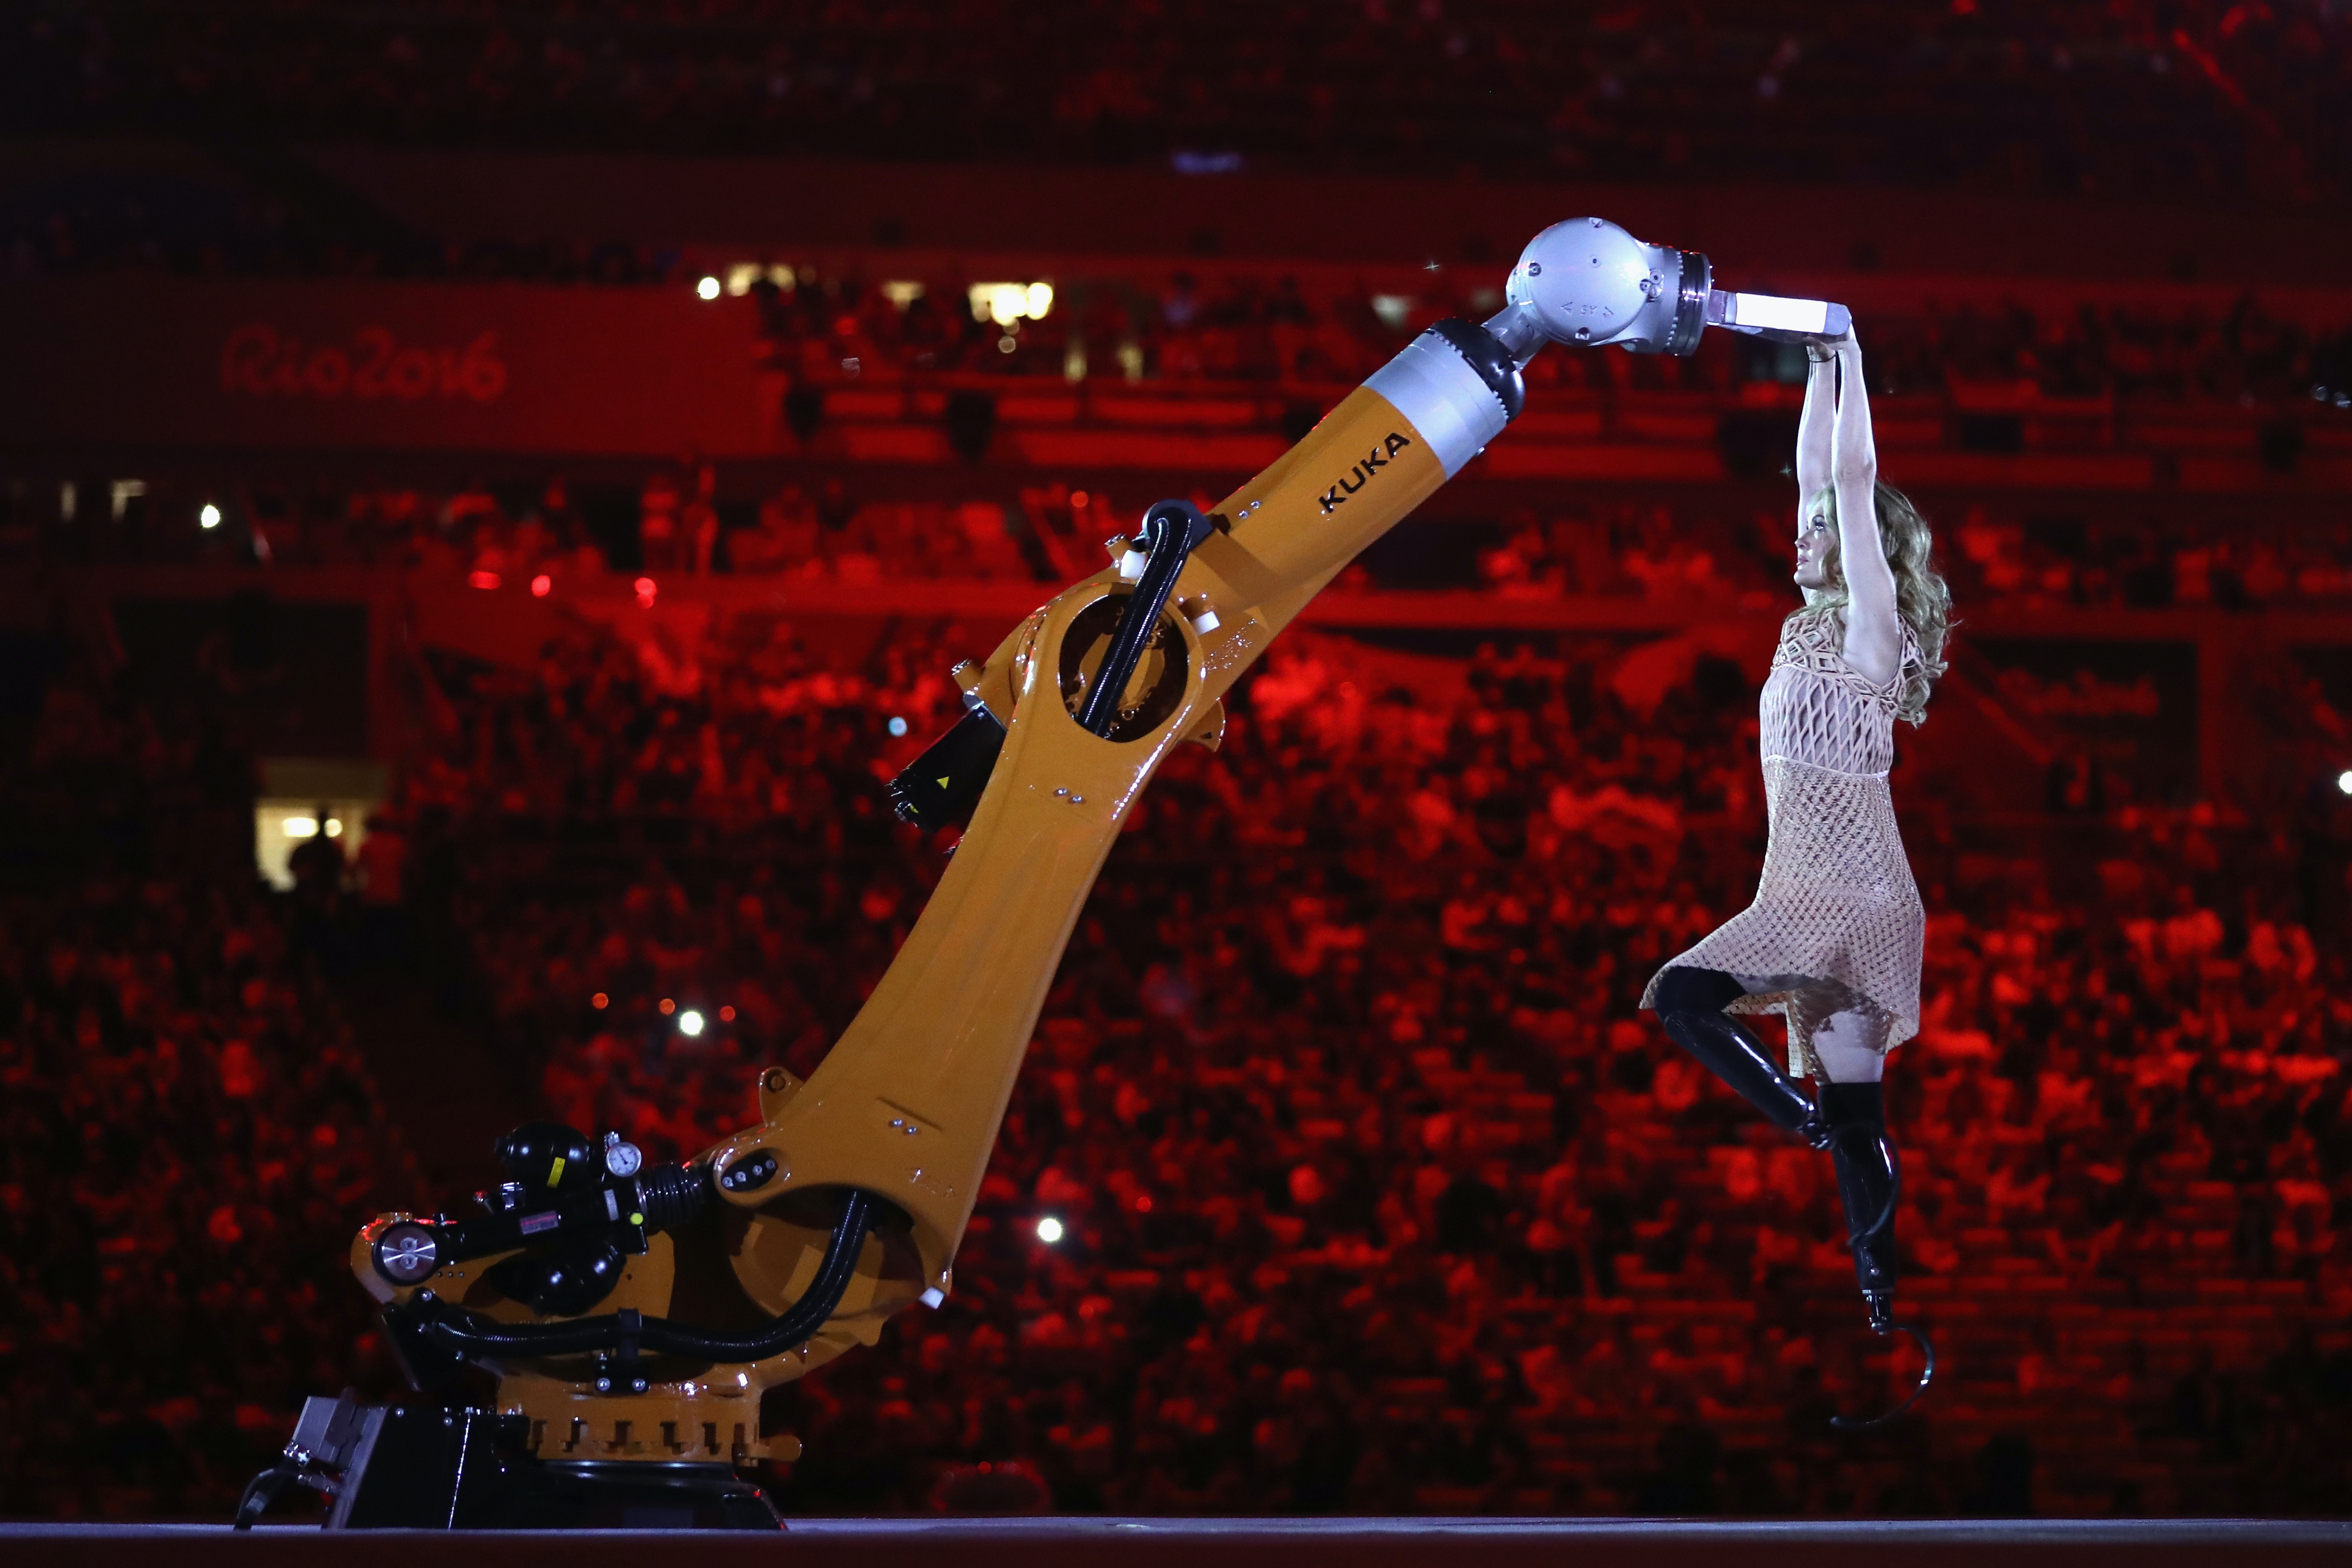 Dancer Amy performs with robot KUKA during the Opening Ceremony of the Rio 2016 Paralympic Games.